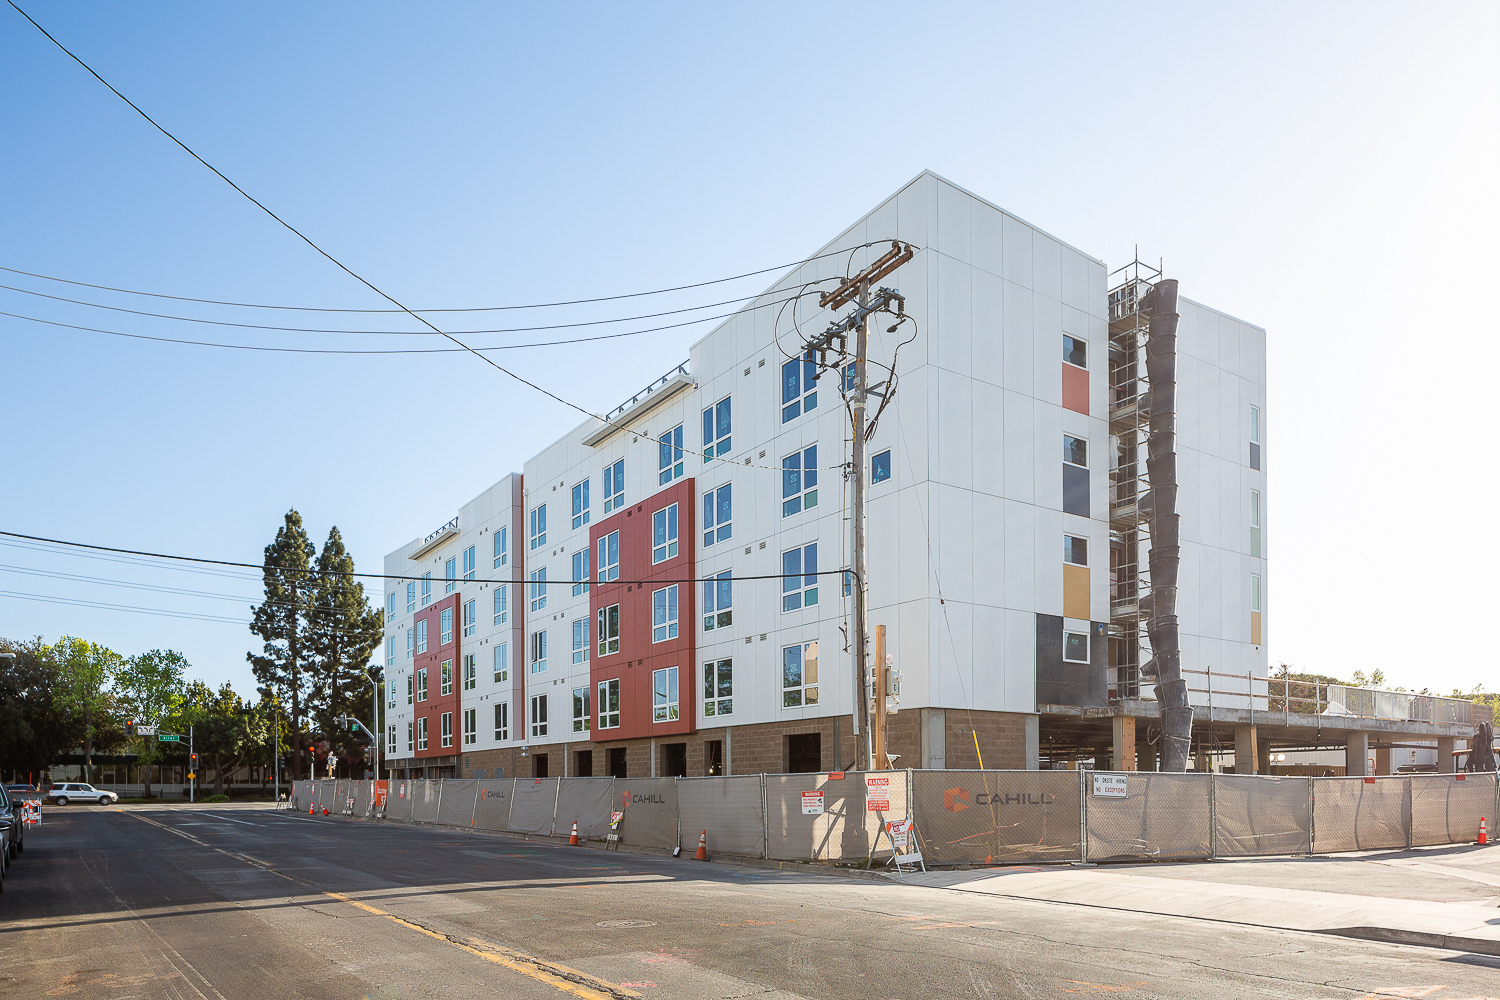 2904 Corvin Drive construction update, image by Andrew Campbell Nelson